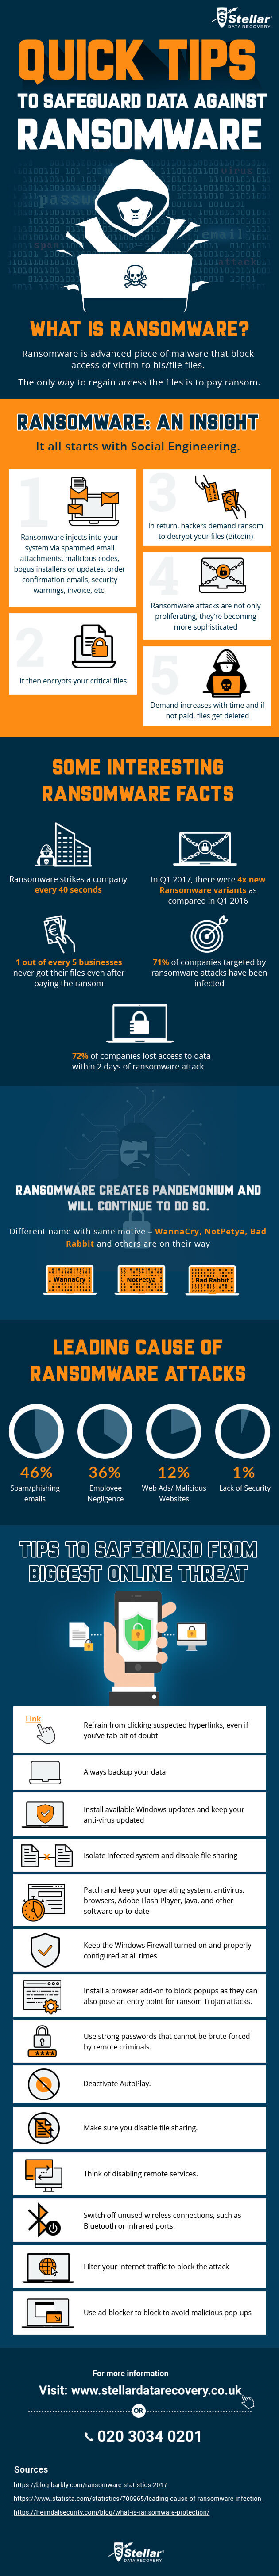 Ransomware attacks - stellar data recovery